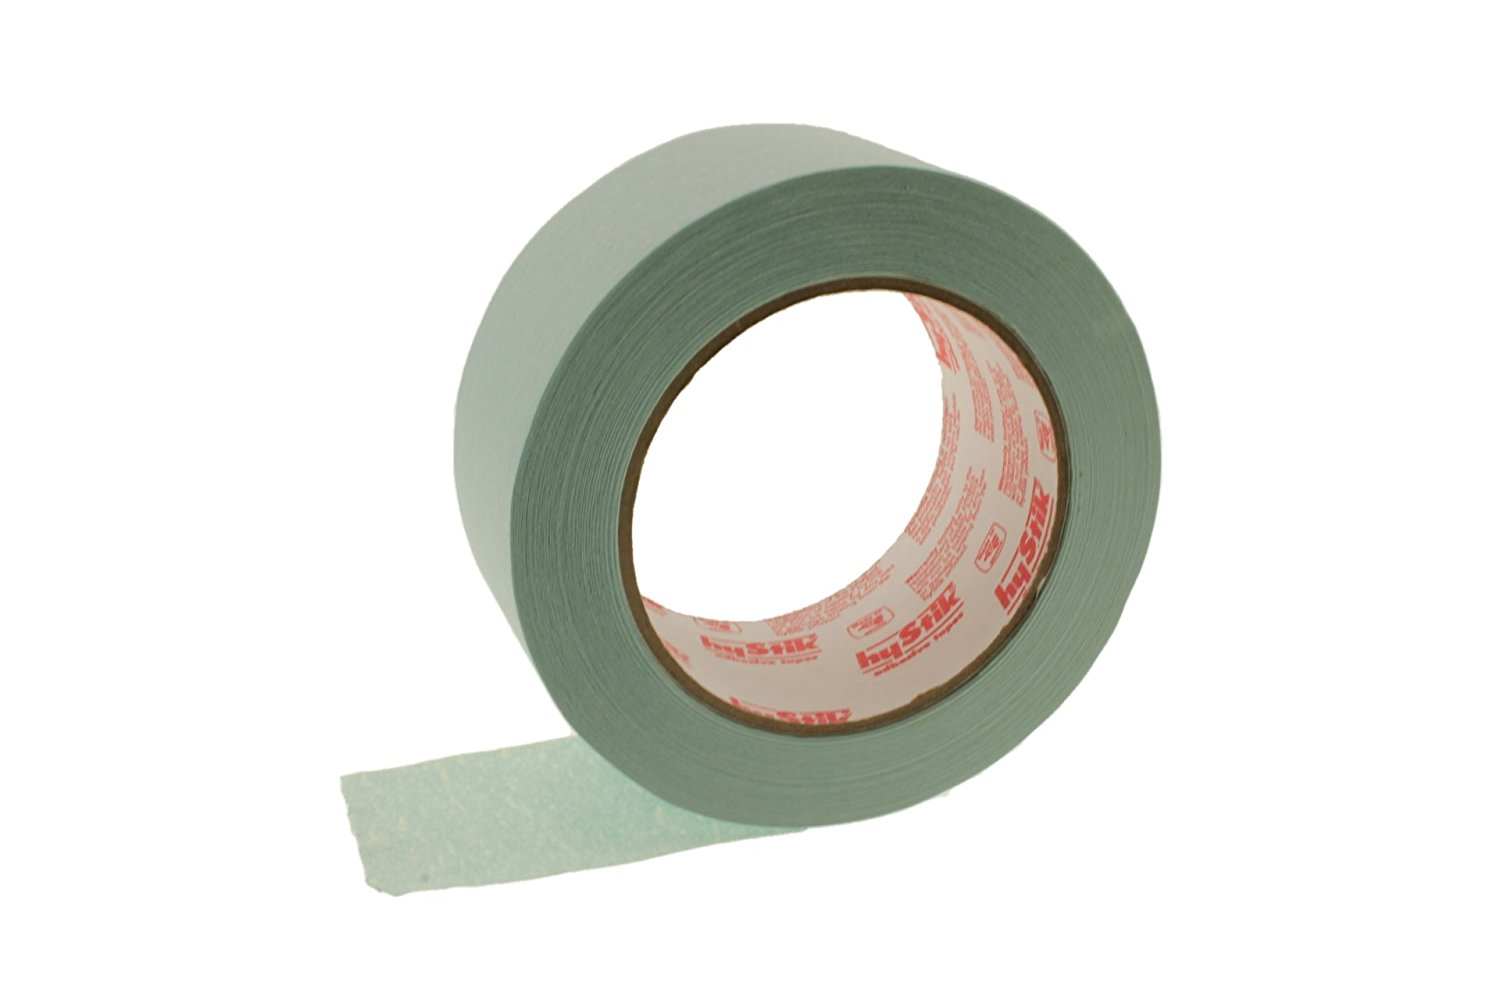 1.88 in 48MM 2 inch x 60yd STIKK Purple Painters Tape 14 Day Easy Removal Trim Edge Finishing Decorative Marking Masking Tape